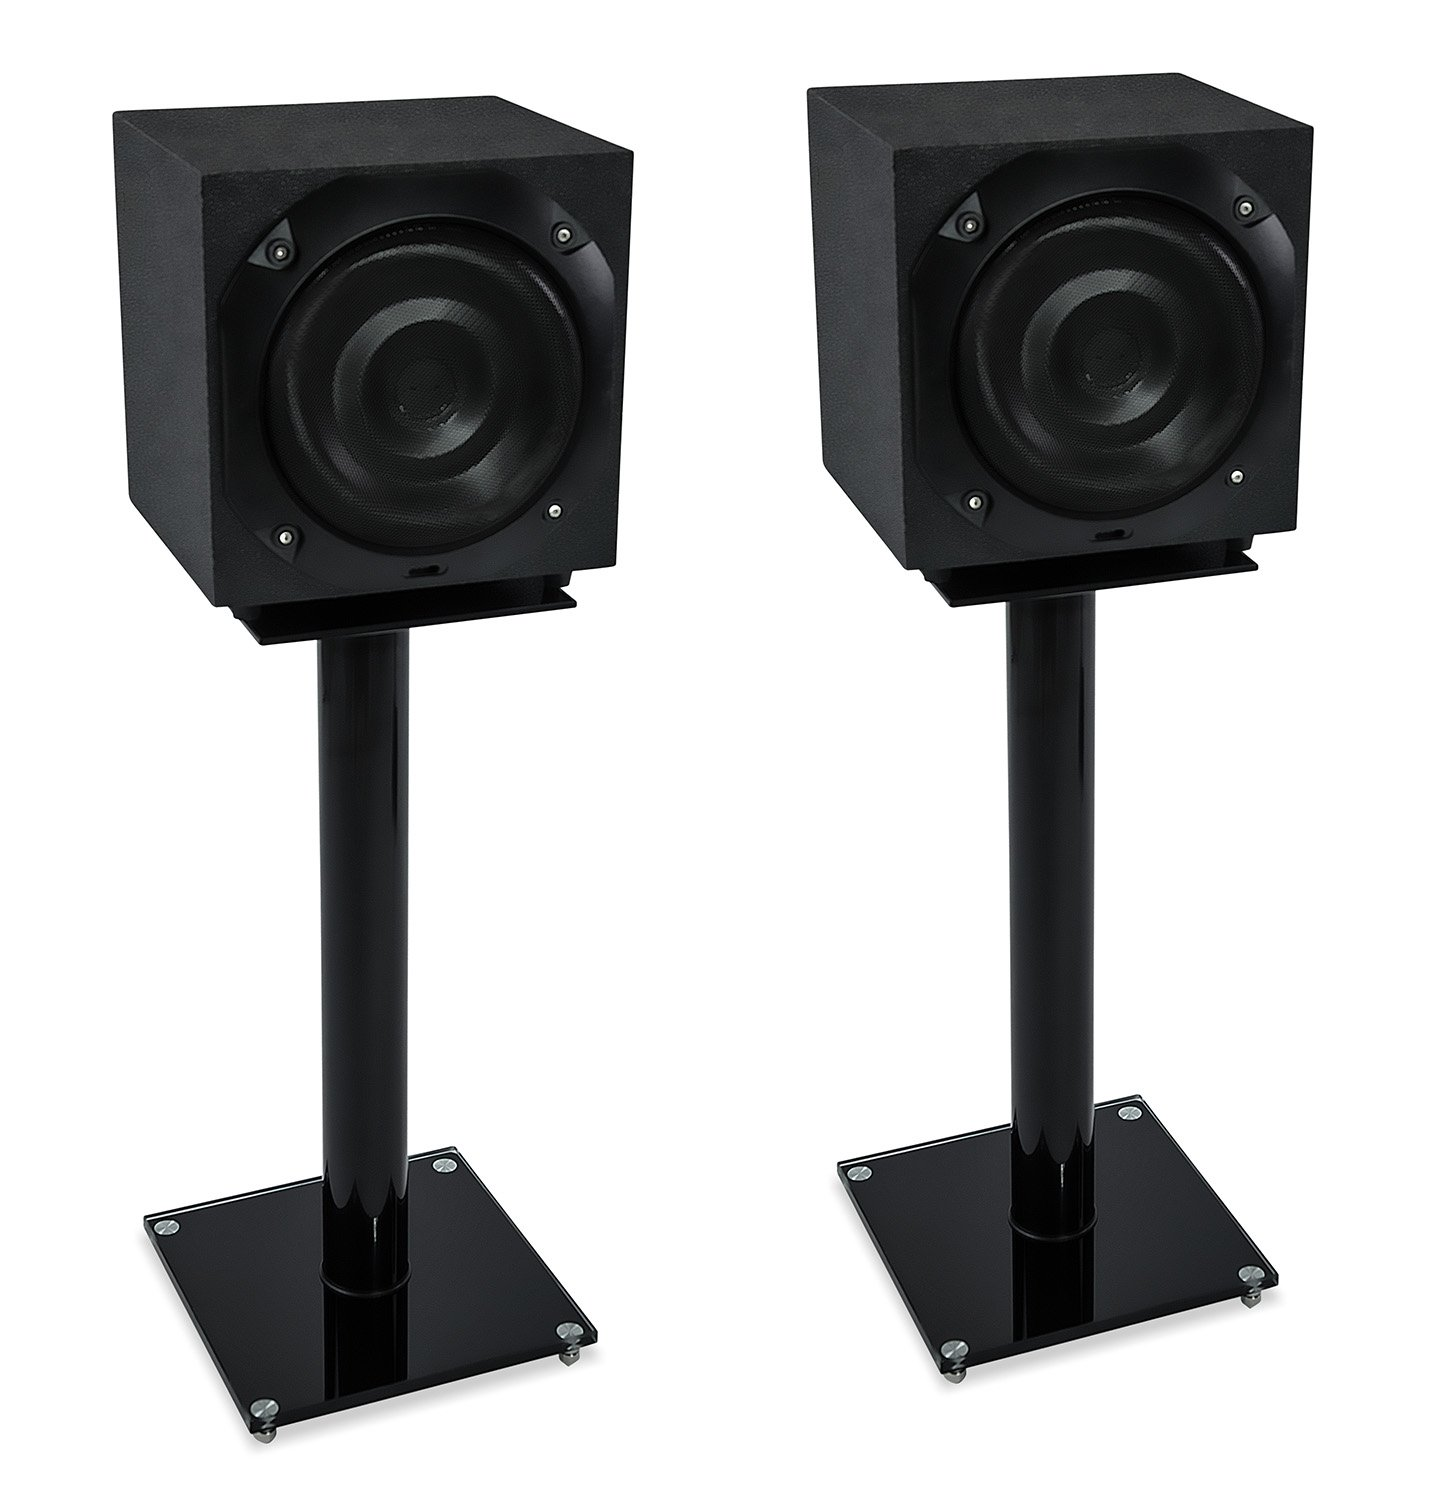 Mount-It! Floor Speaker Stands for Satellite Speakers and Surround Sound (5.1 and 2.1) Systems, Glass and Aluminum, Black (MI-58B)